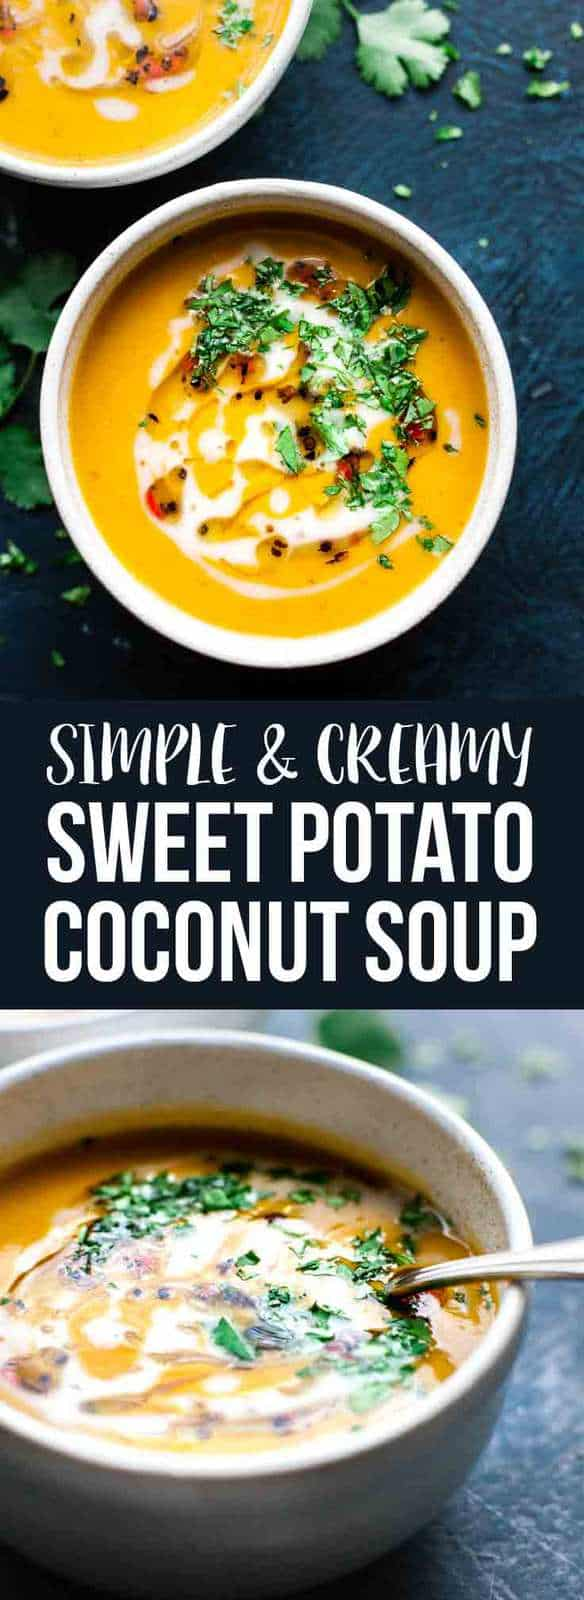 This Sweet potato coconut soup is quick and easy and completely healthy. Full of fragrant Thai curry flavours and super creamy coconut milk. SaltedMint.Com #soup #cleaneats #curry #healthy